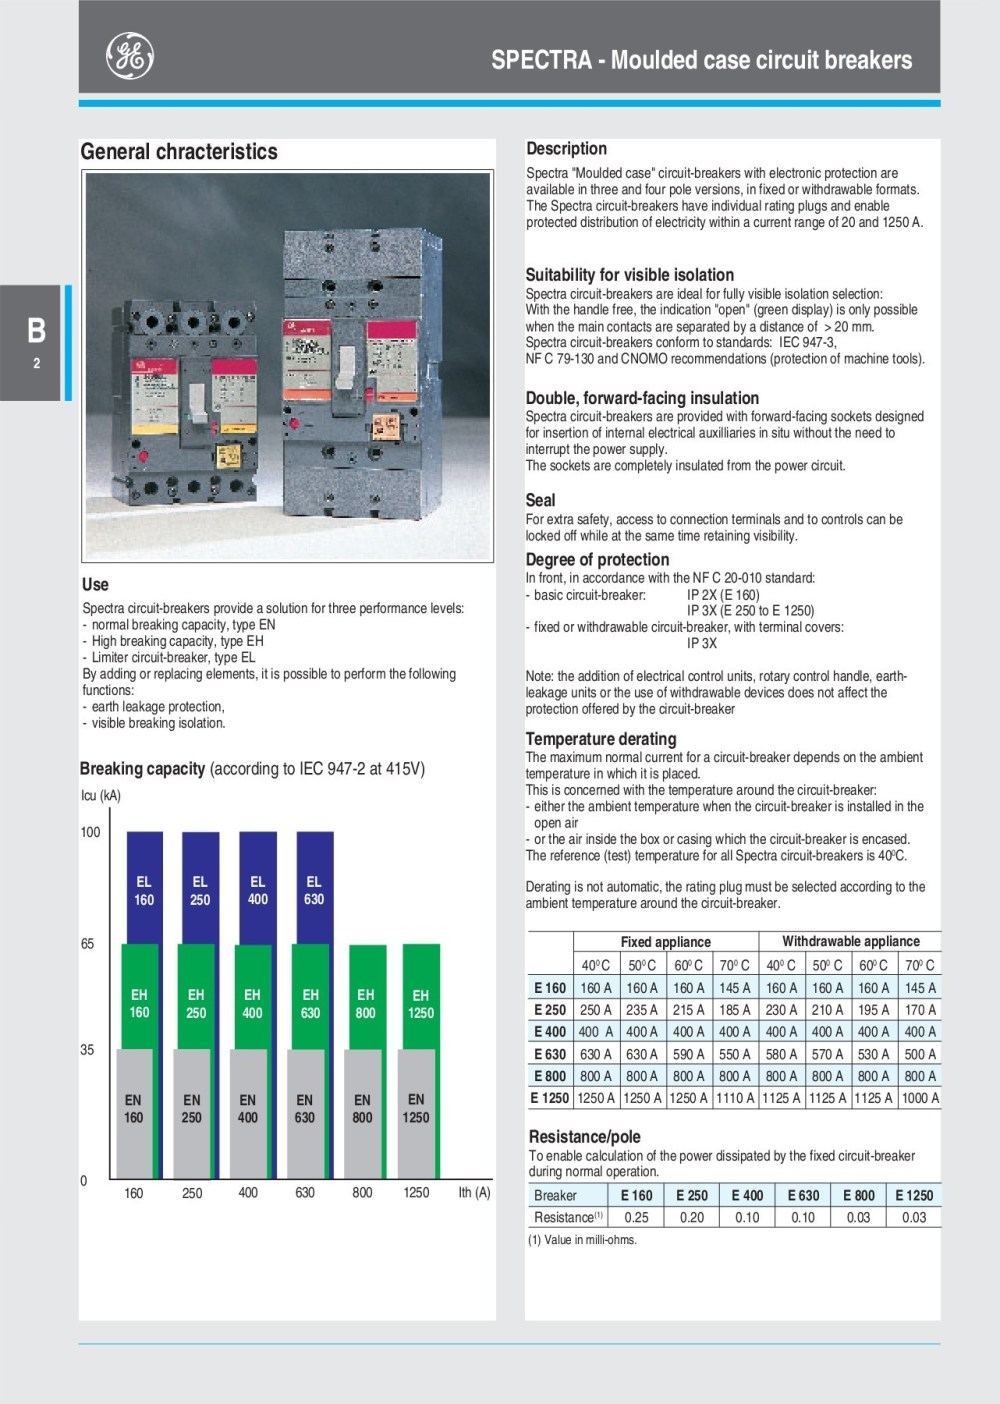 medium resolution of spectra moulded case circuit breakers pages 1 50 text version fliphtml5